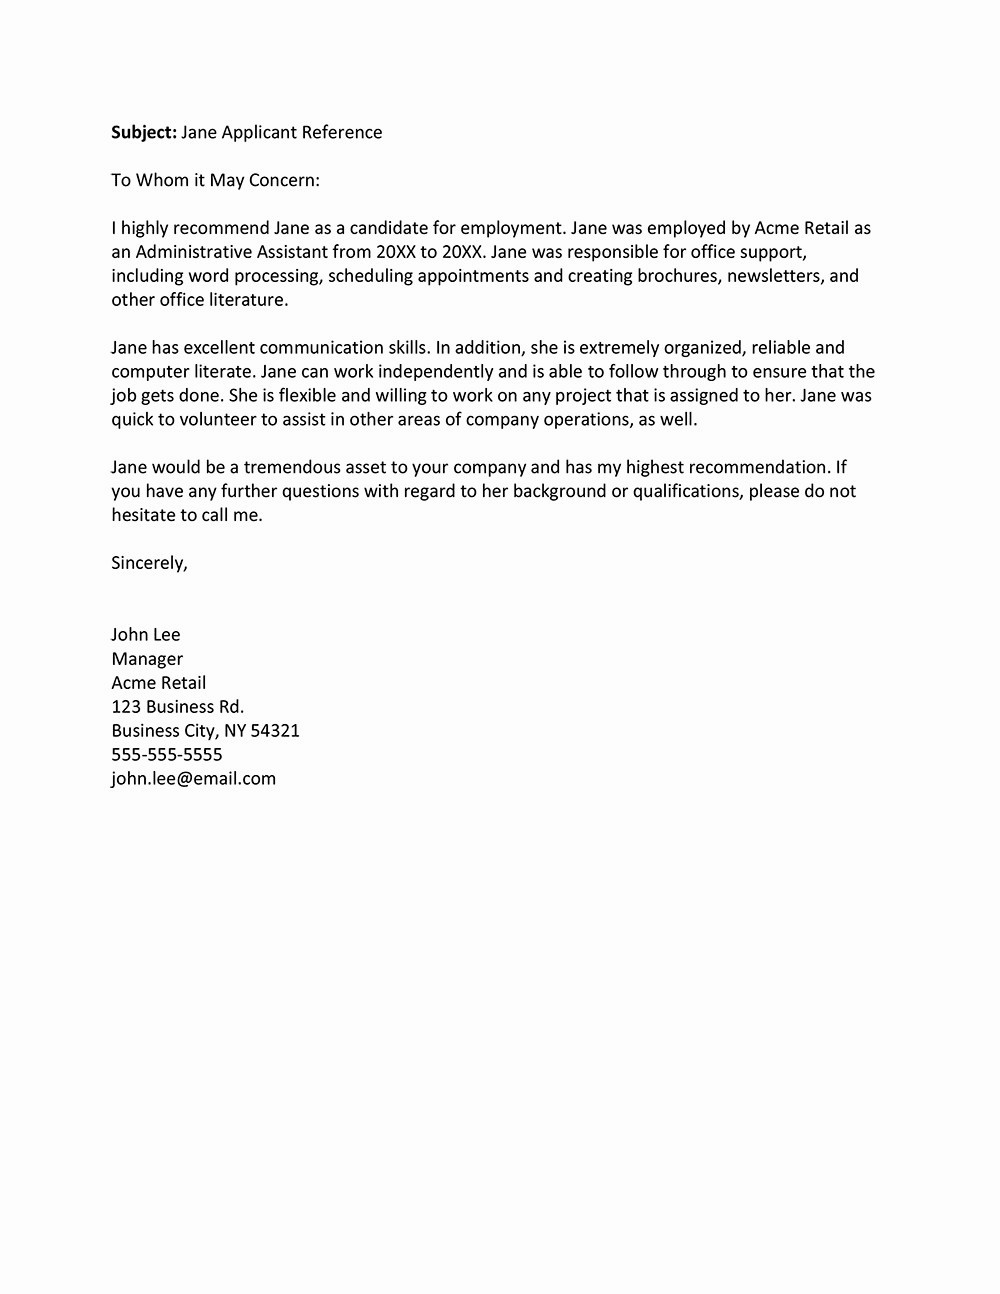 Short Recommendation Letter for Employee Unique Sample Letter Professional Clearance format for